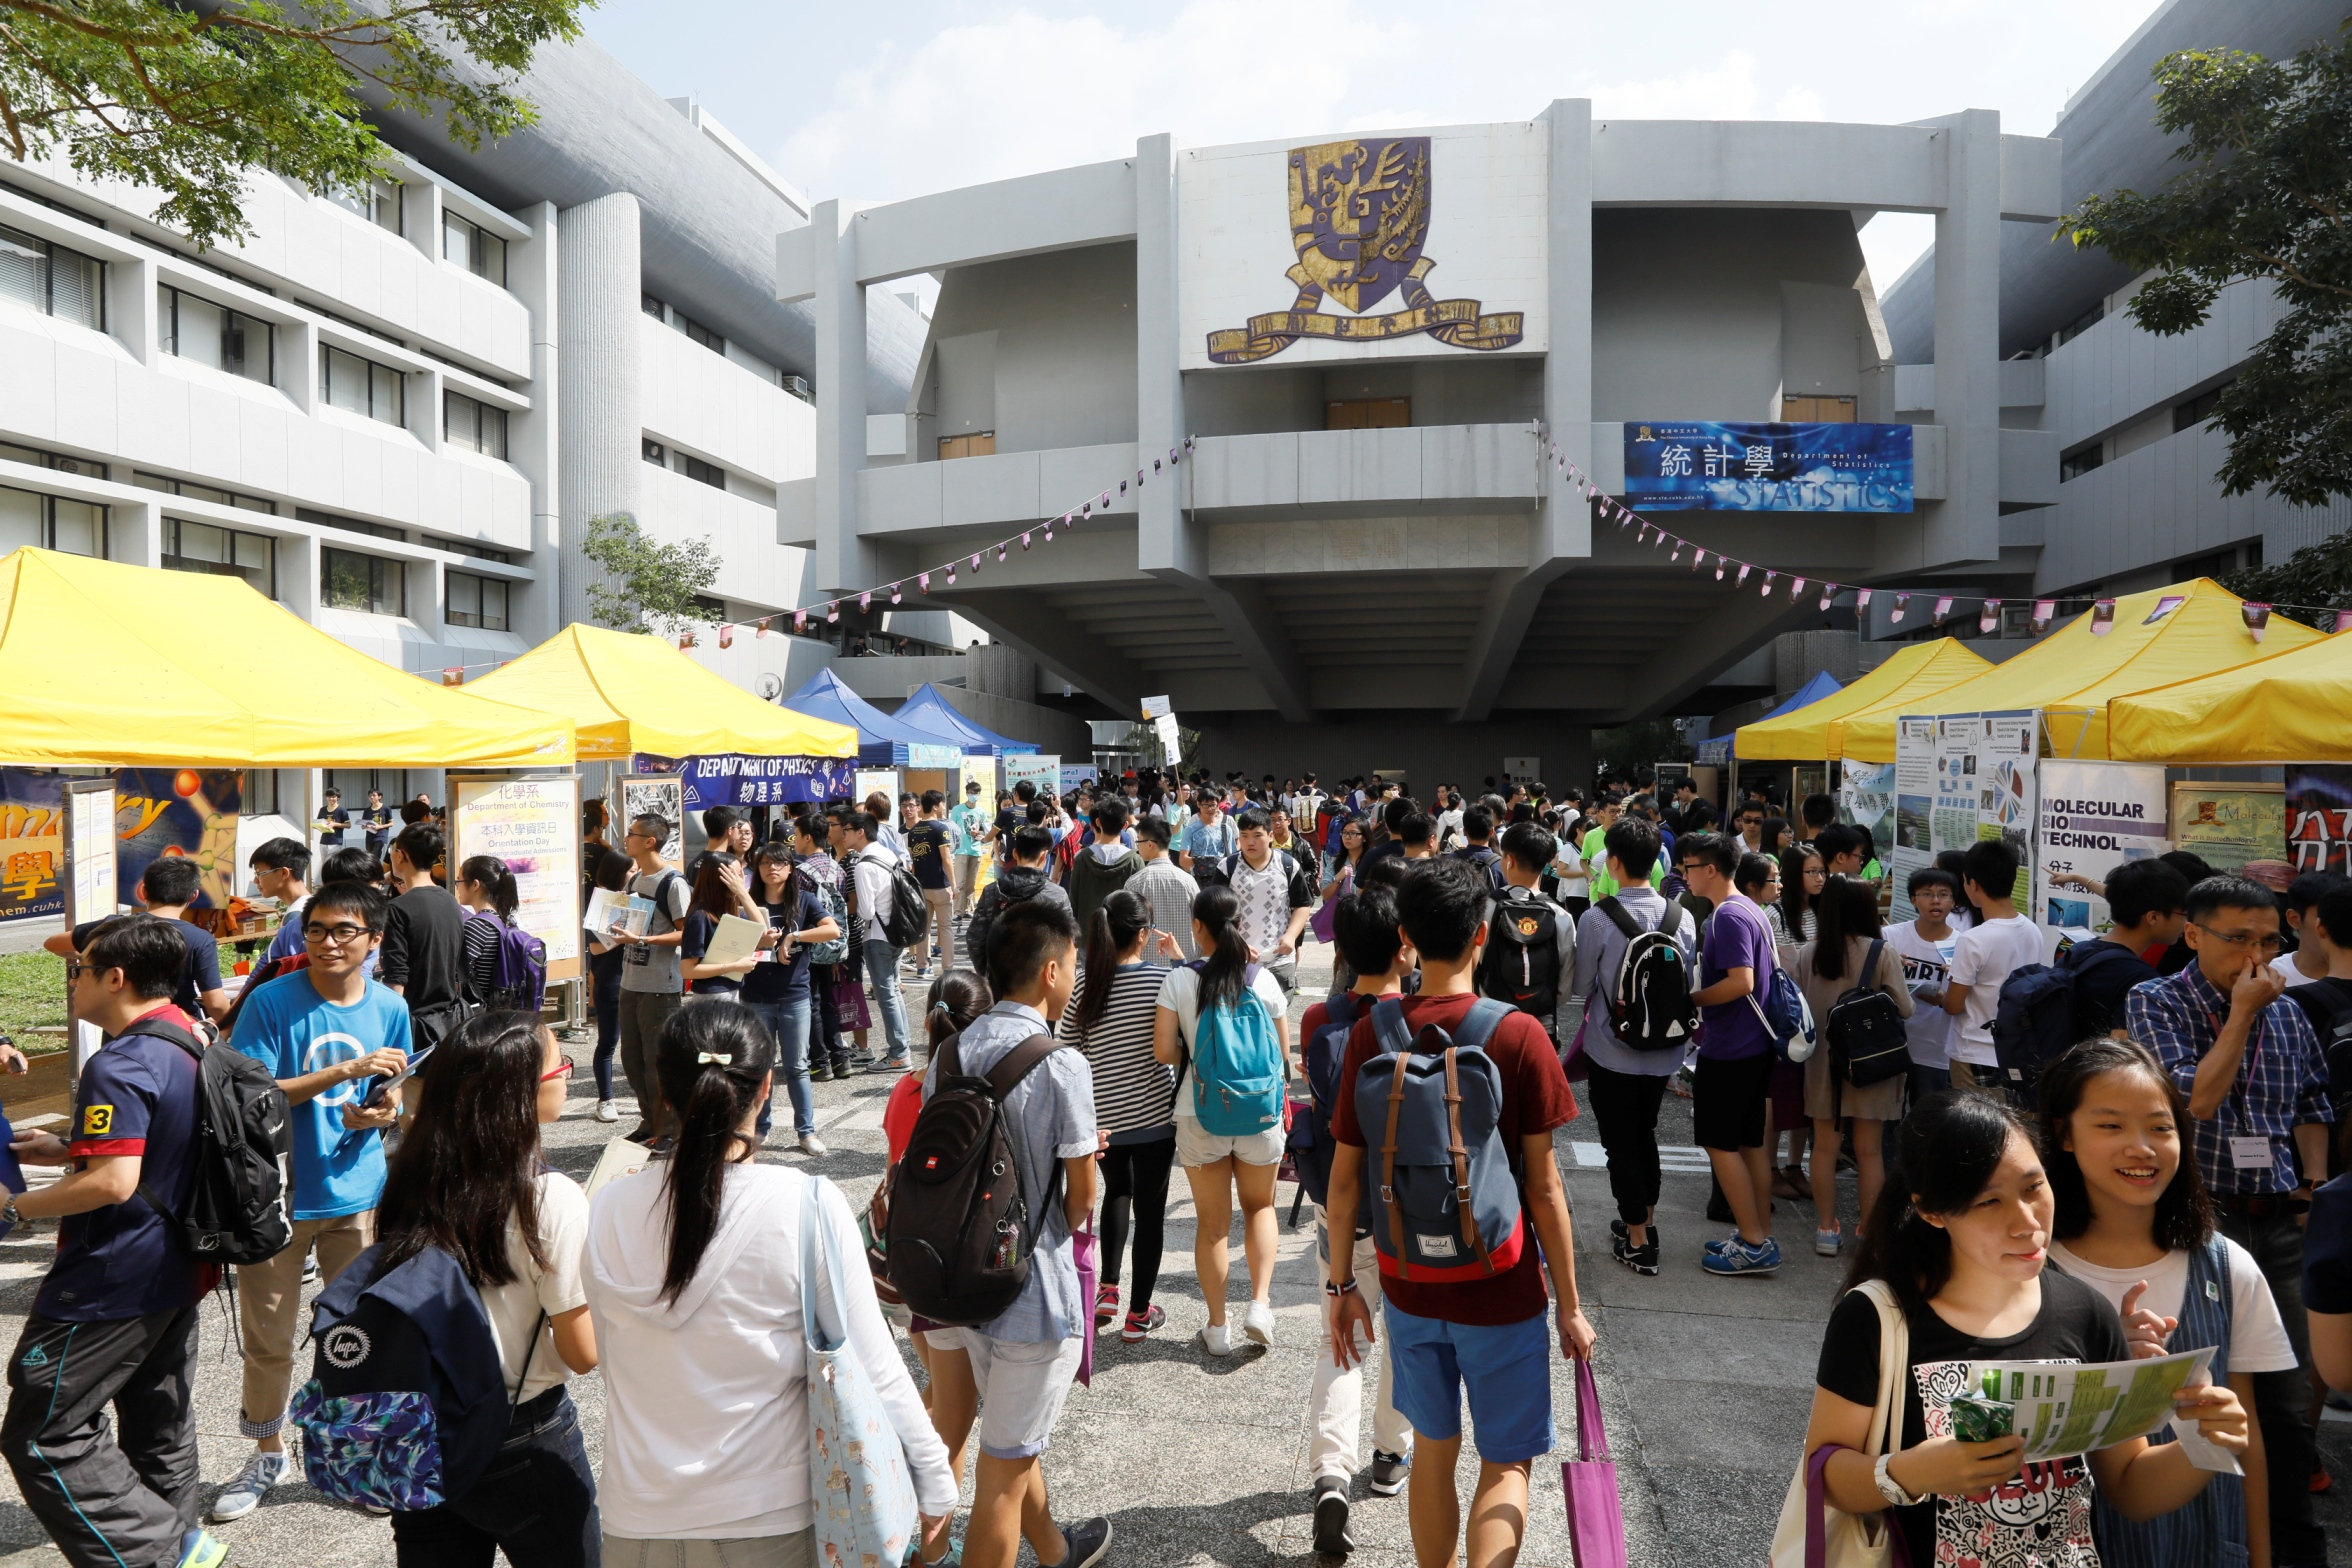 The Orientation Day for Undergraduate Admissions of CUHK draws 54 thousand visitors to the campus.